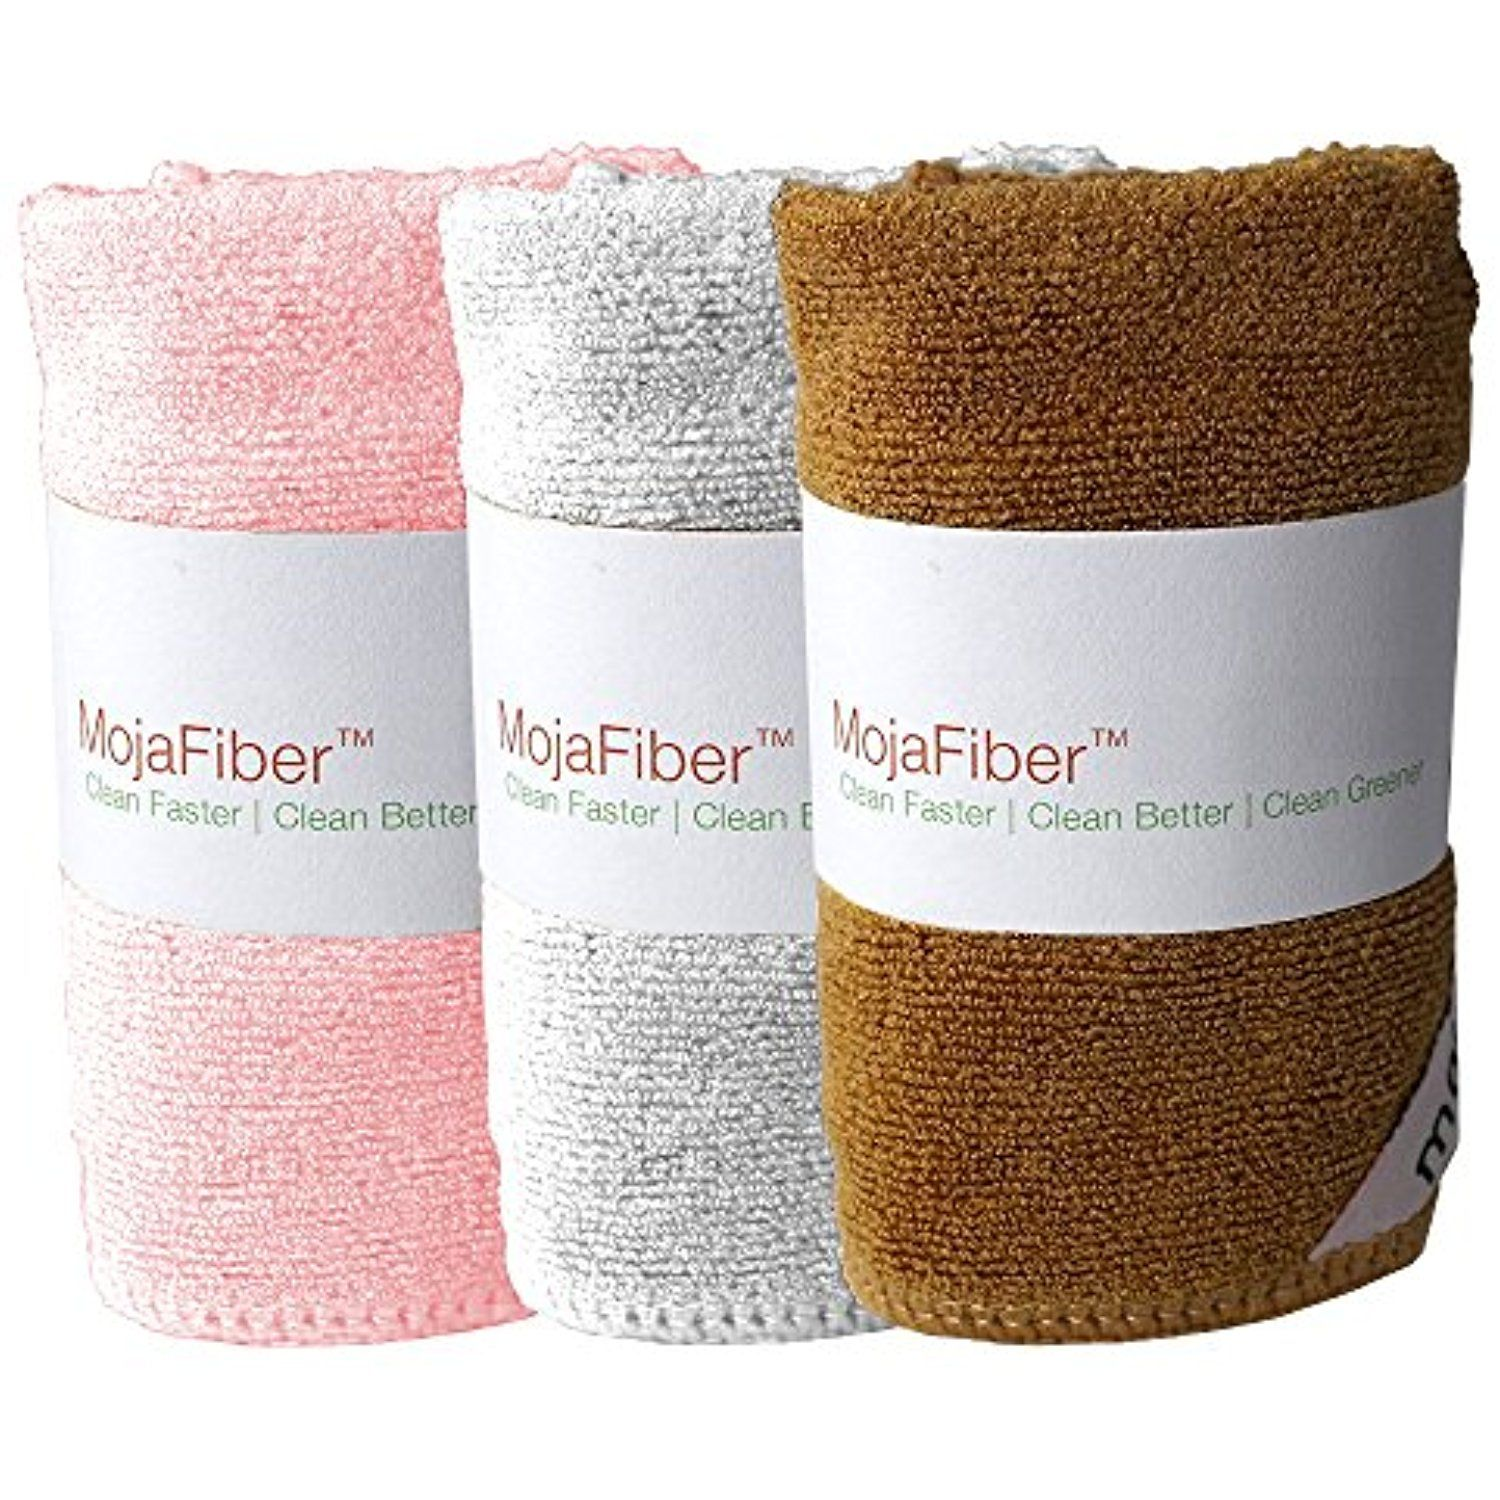 Plush MojaFiber Microfiber Face Cloth Ultra Dense 3 Pk â